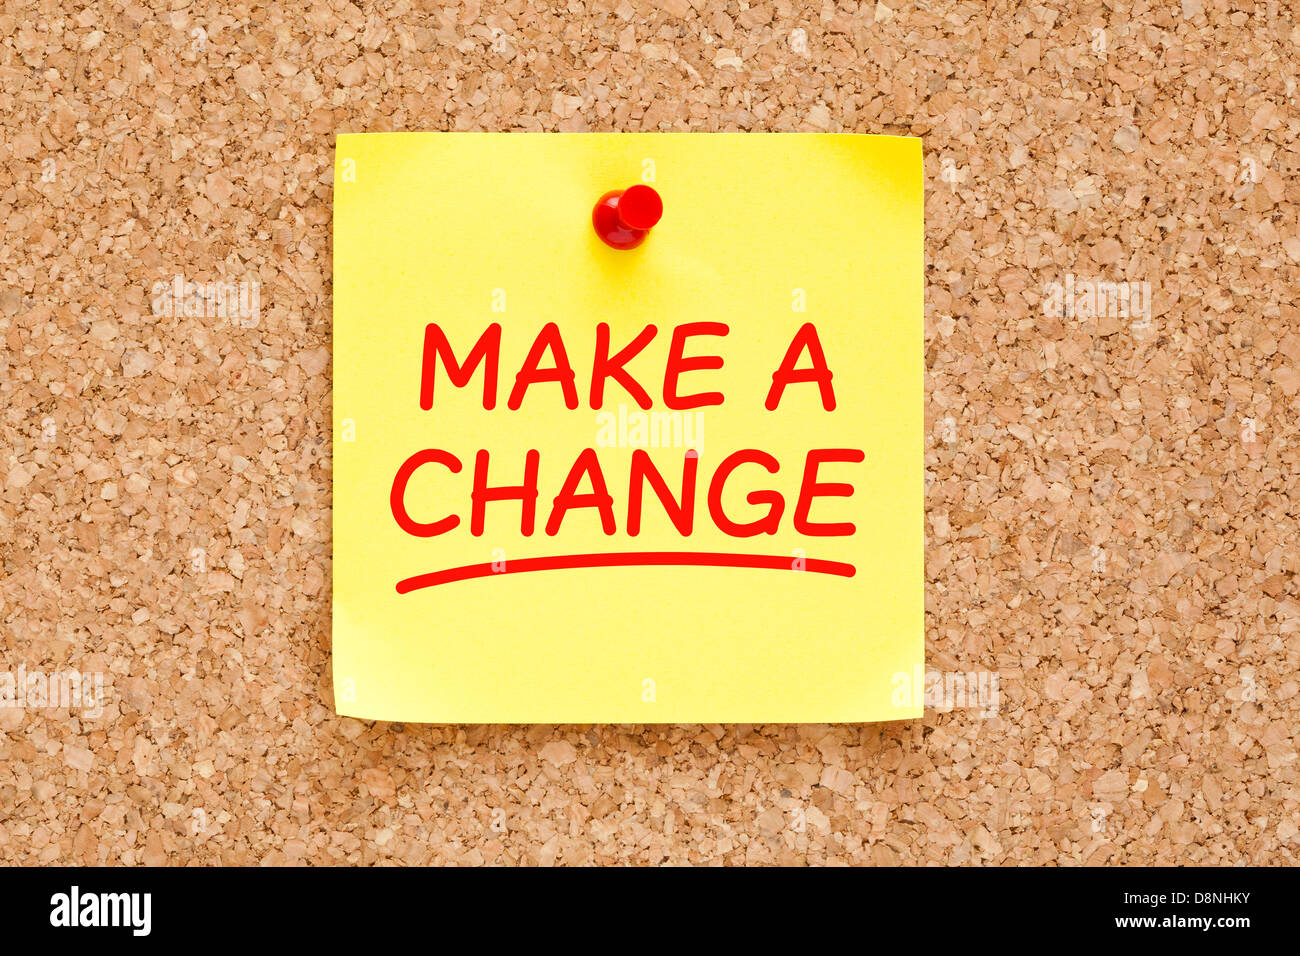 Make a Change written on yellow sticky note with red marker. - Stock Image